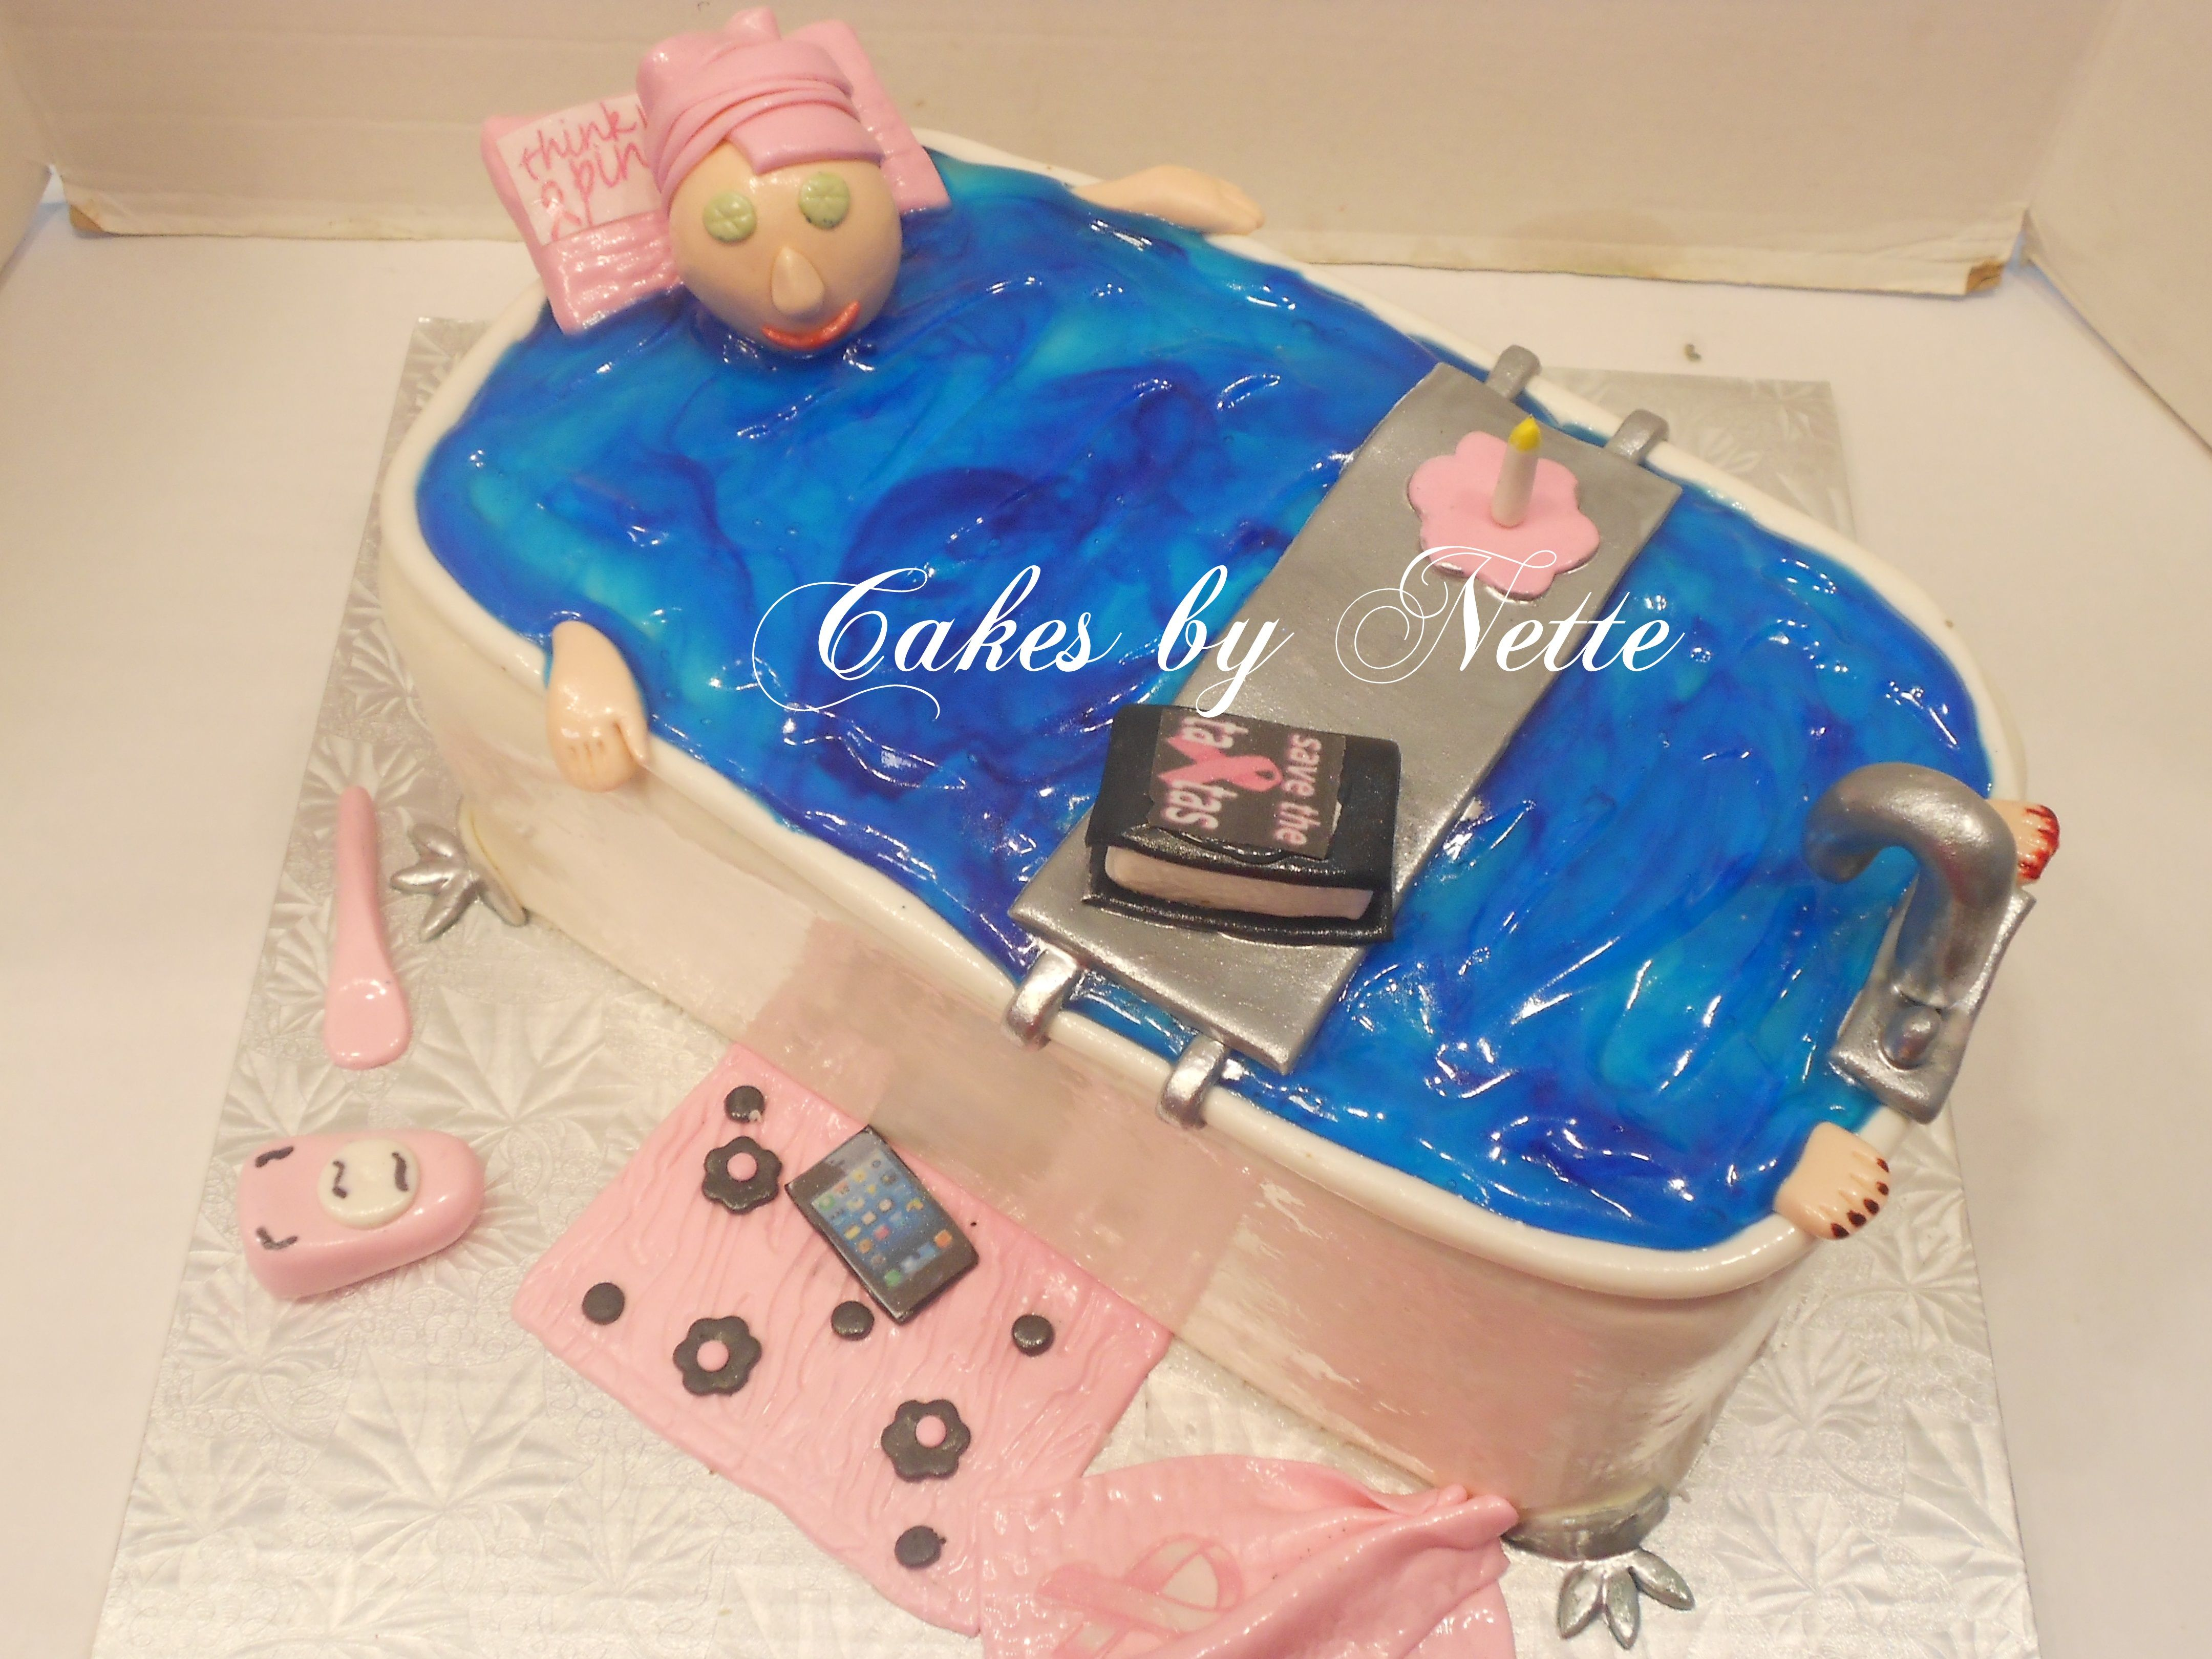 Pamper Me Spa Themed Cake Cakes By Nette St LouisMO Women